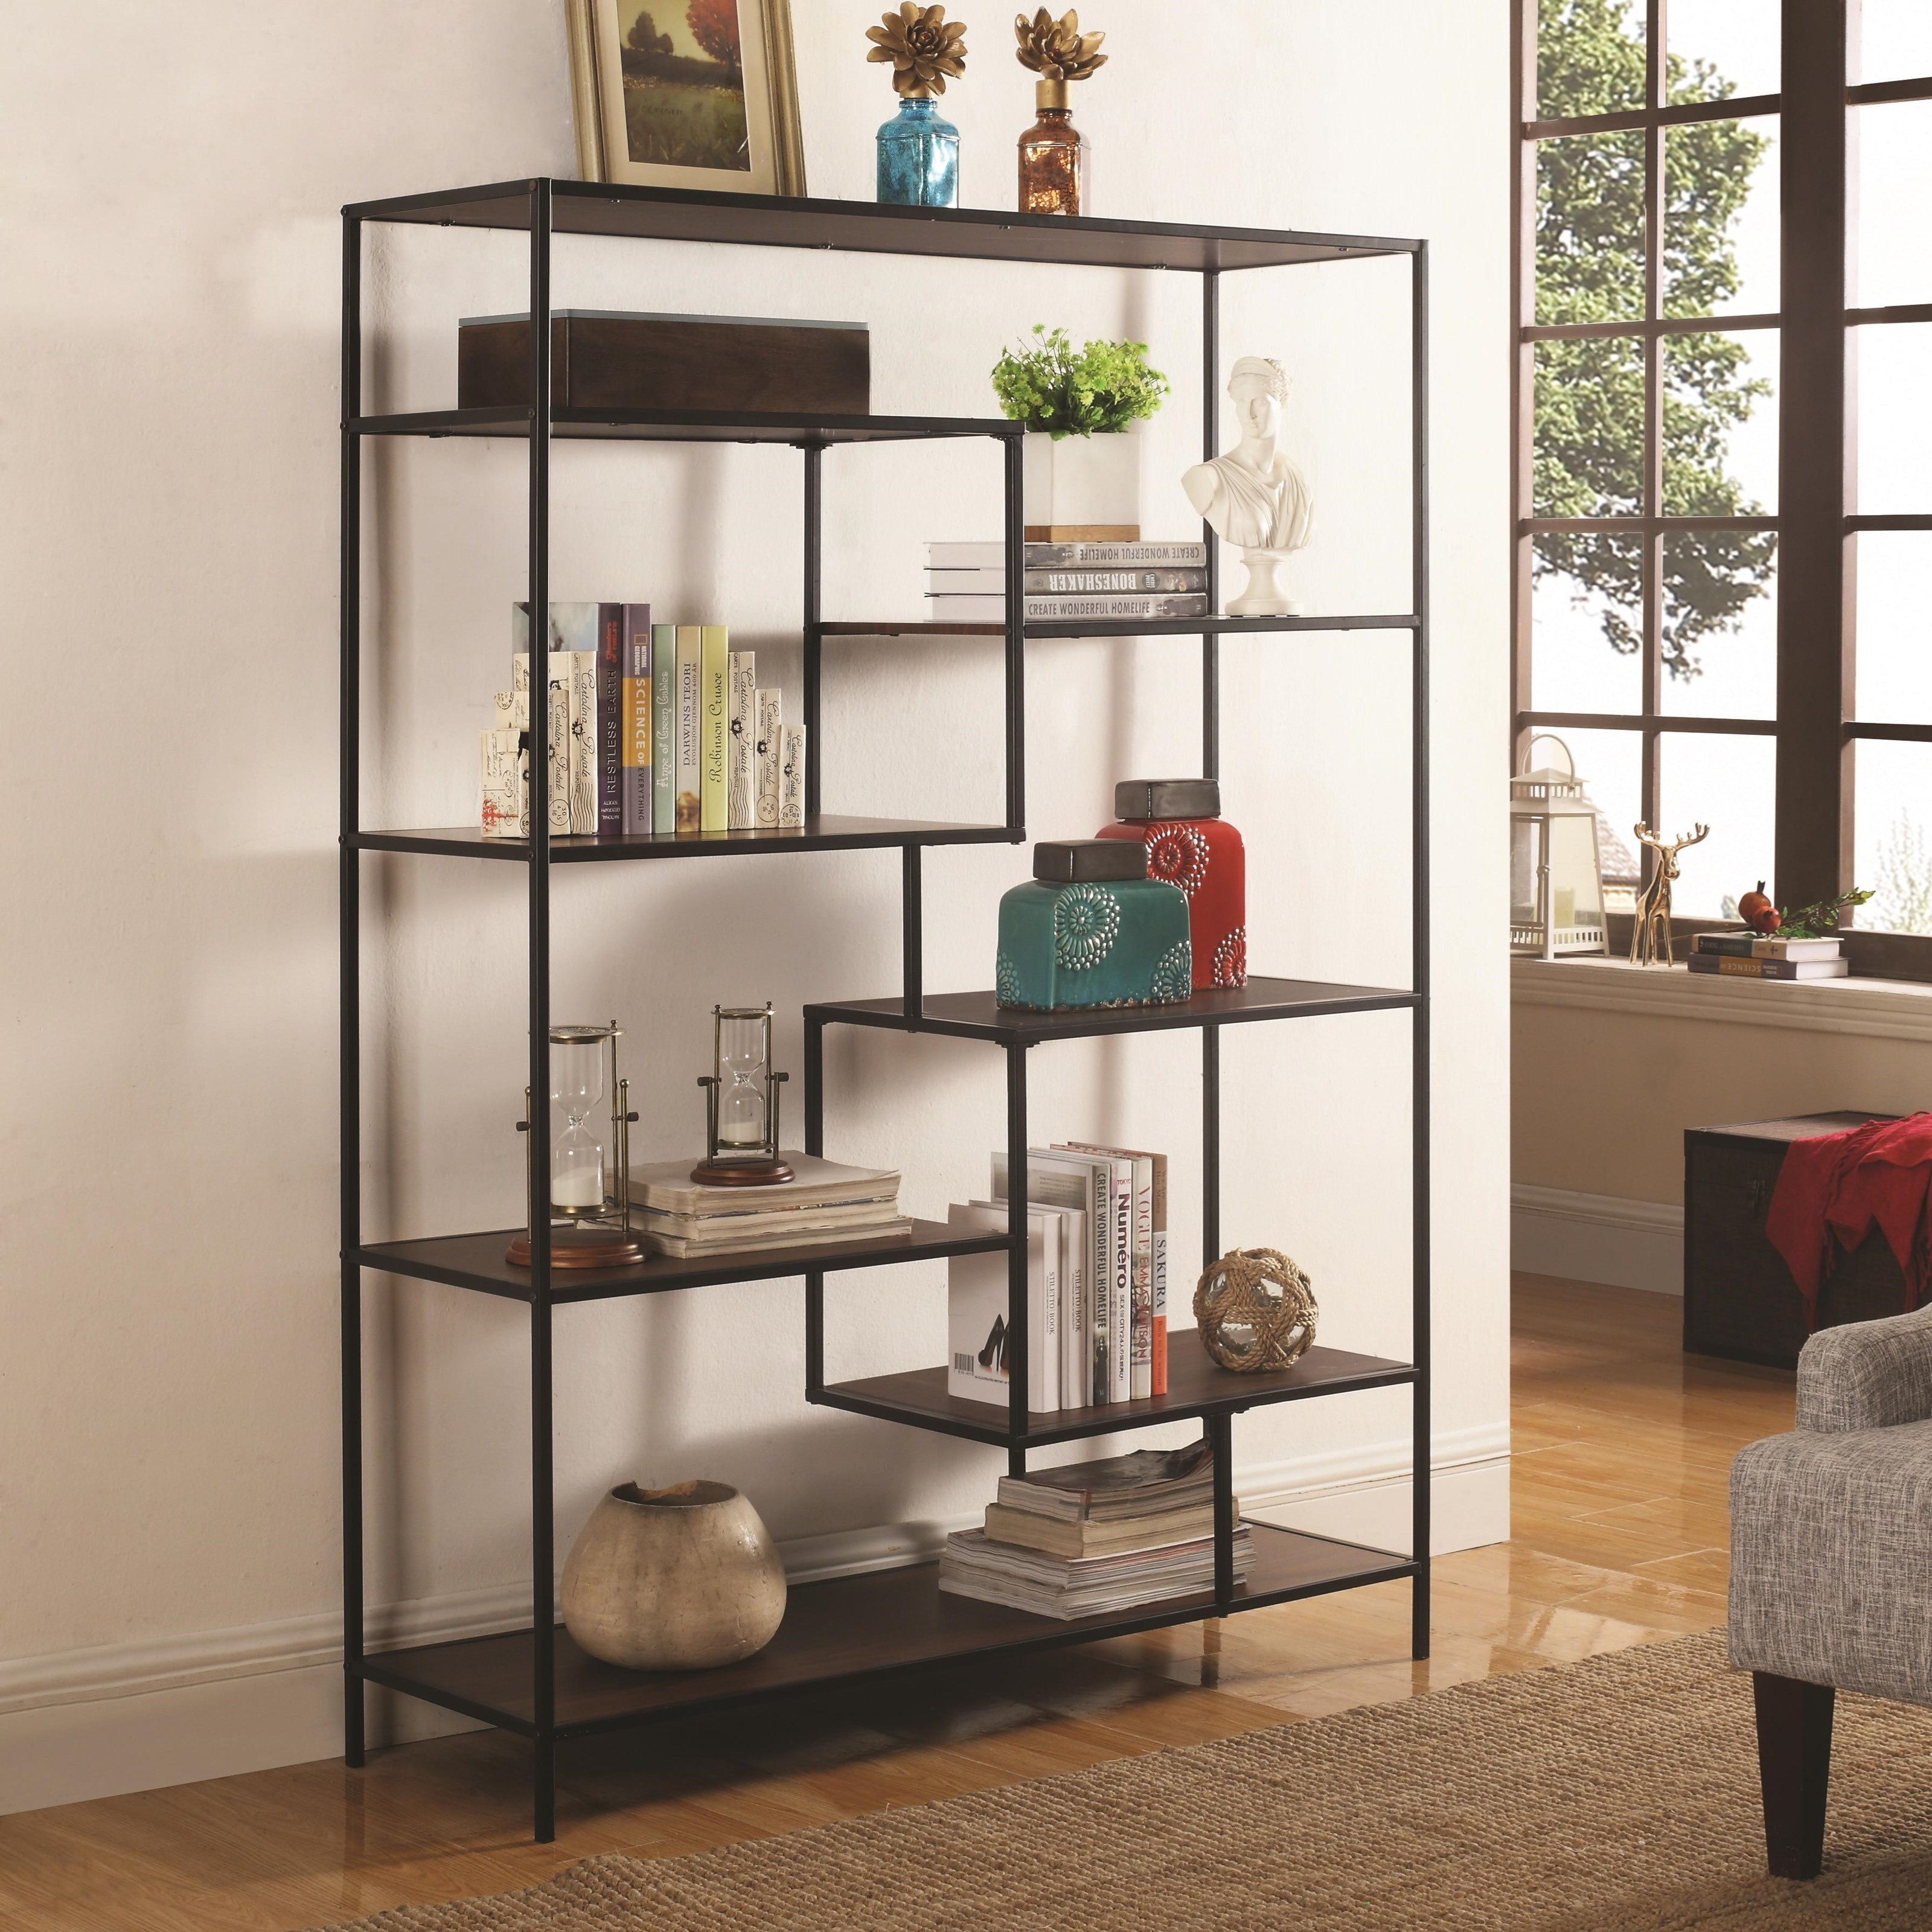 Coaster Bookcases Modern Bookcase With Offset Shelves   Rooms For